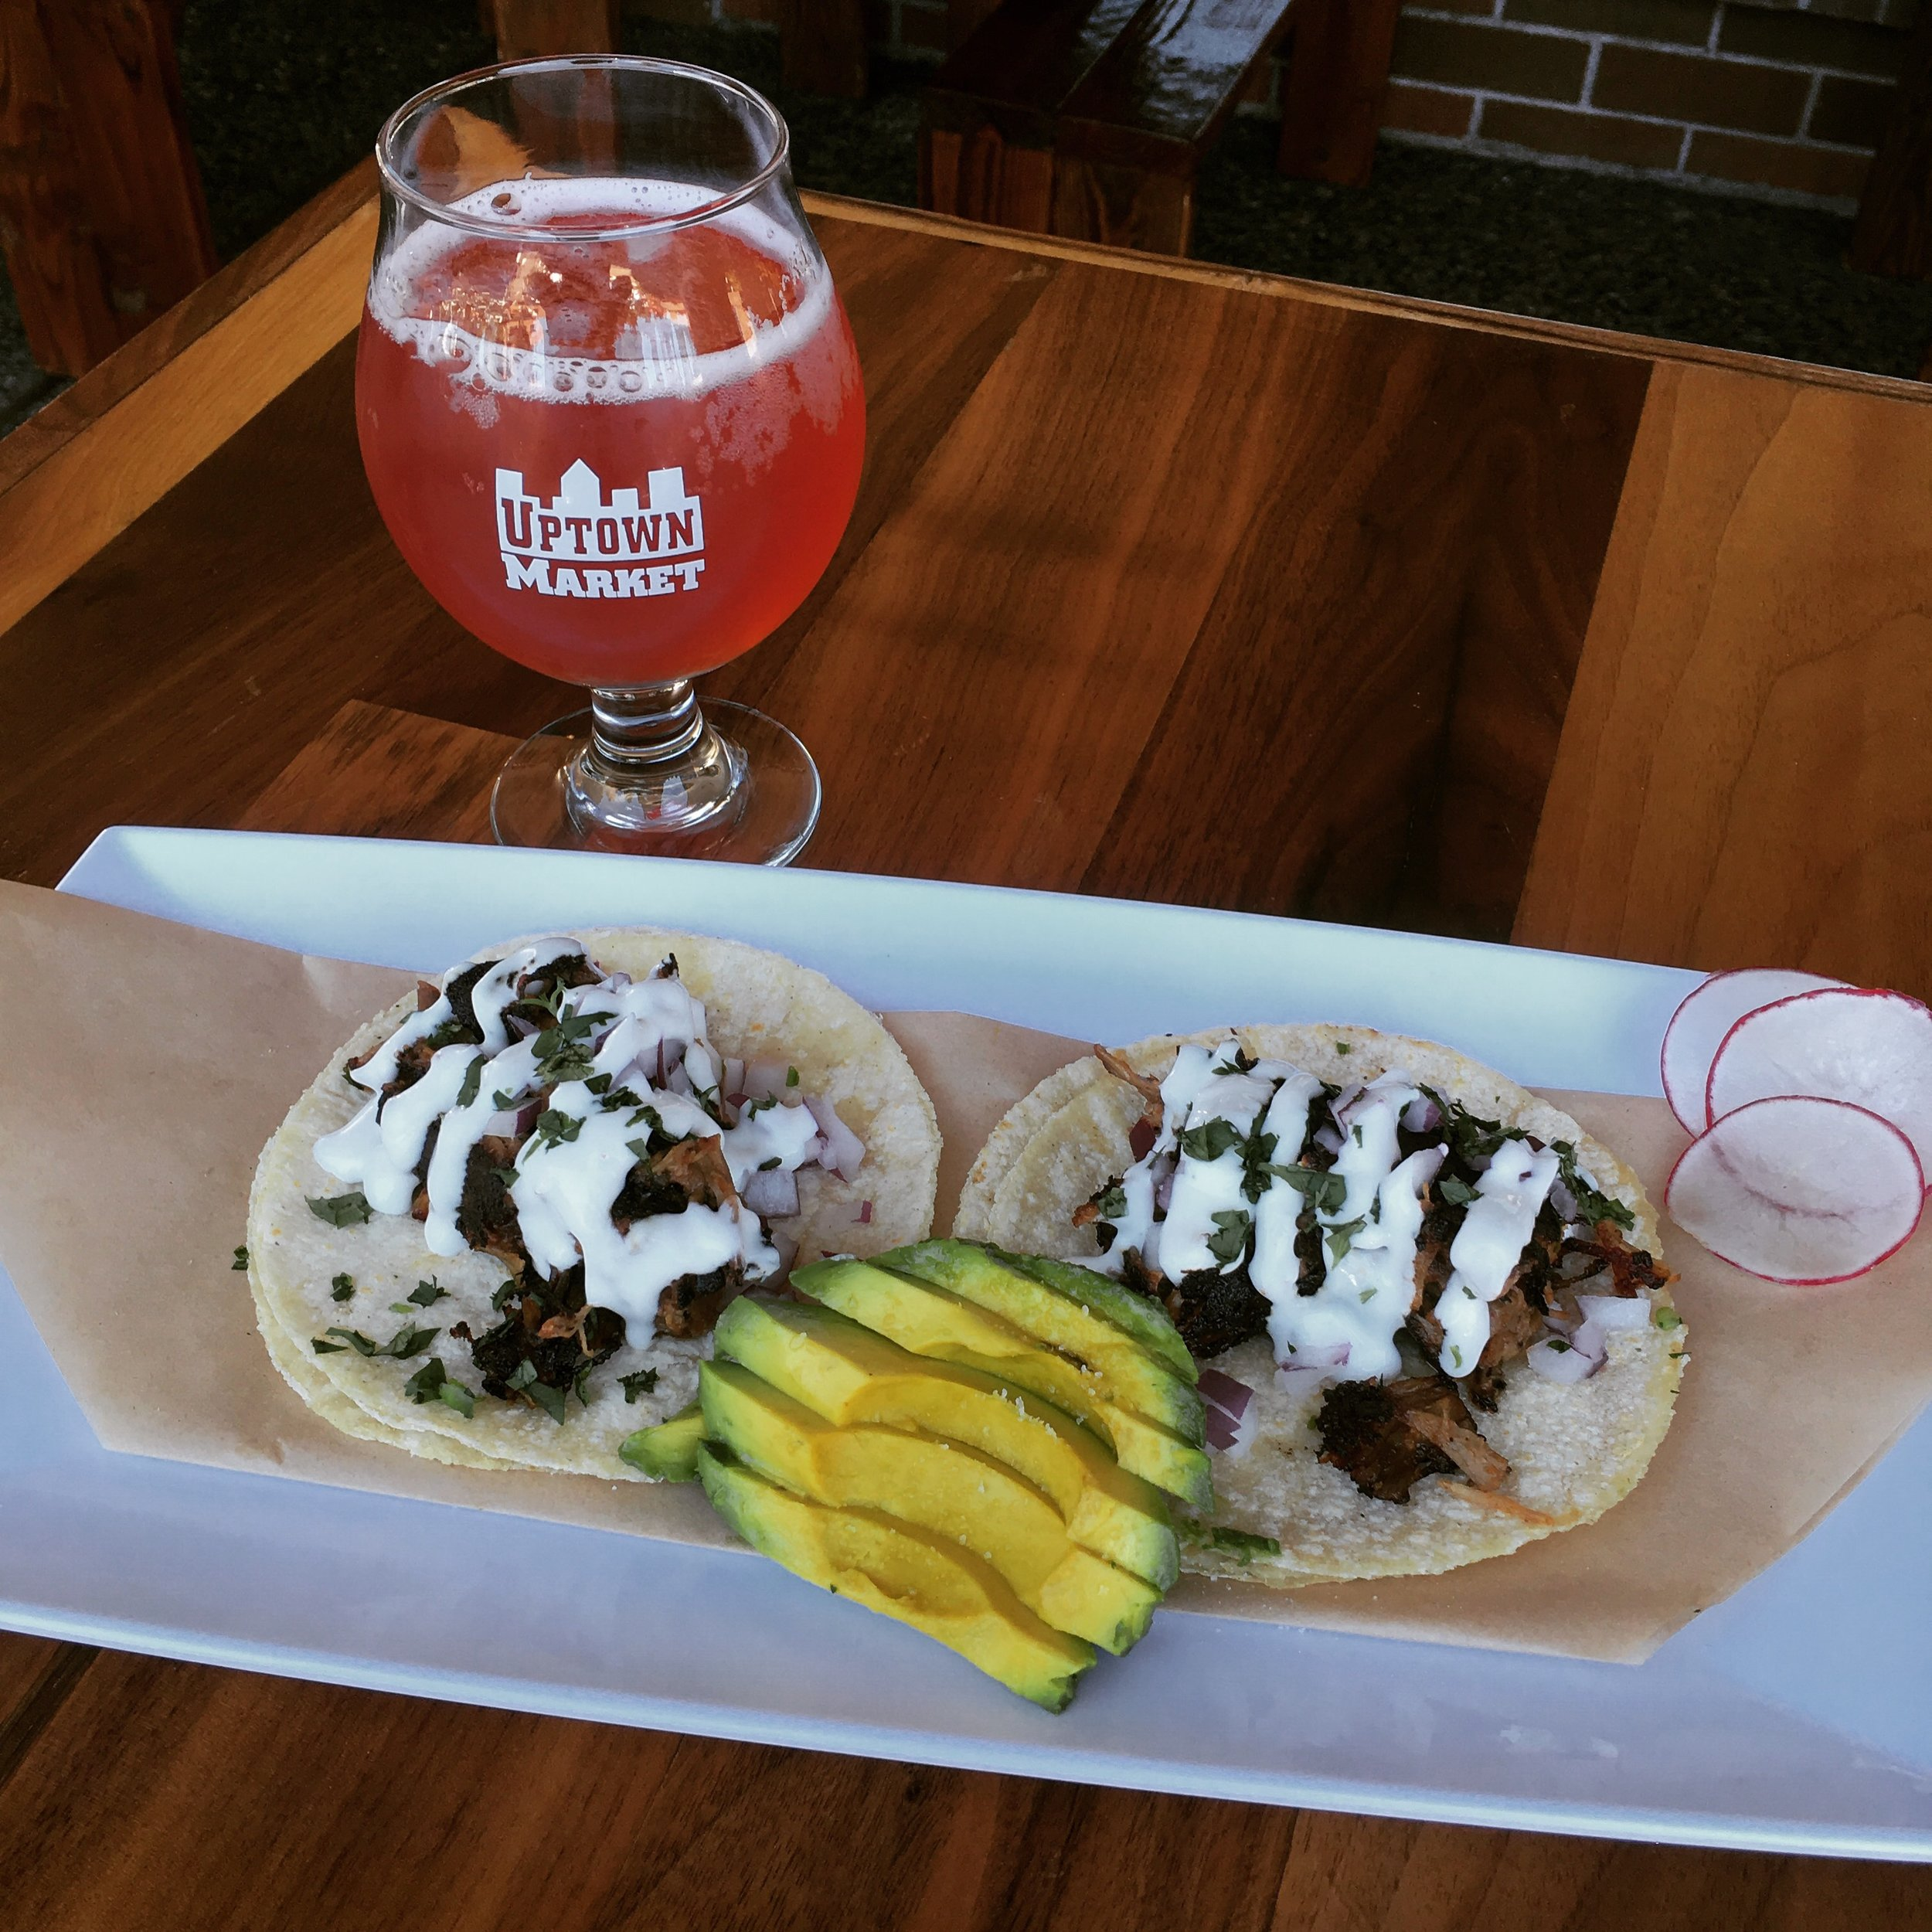 Pork tacos pictured with Lion Heart Kombucha. Makes a great lunch!